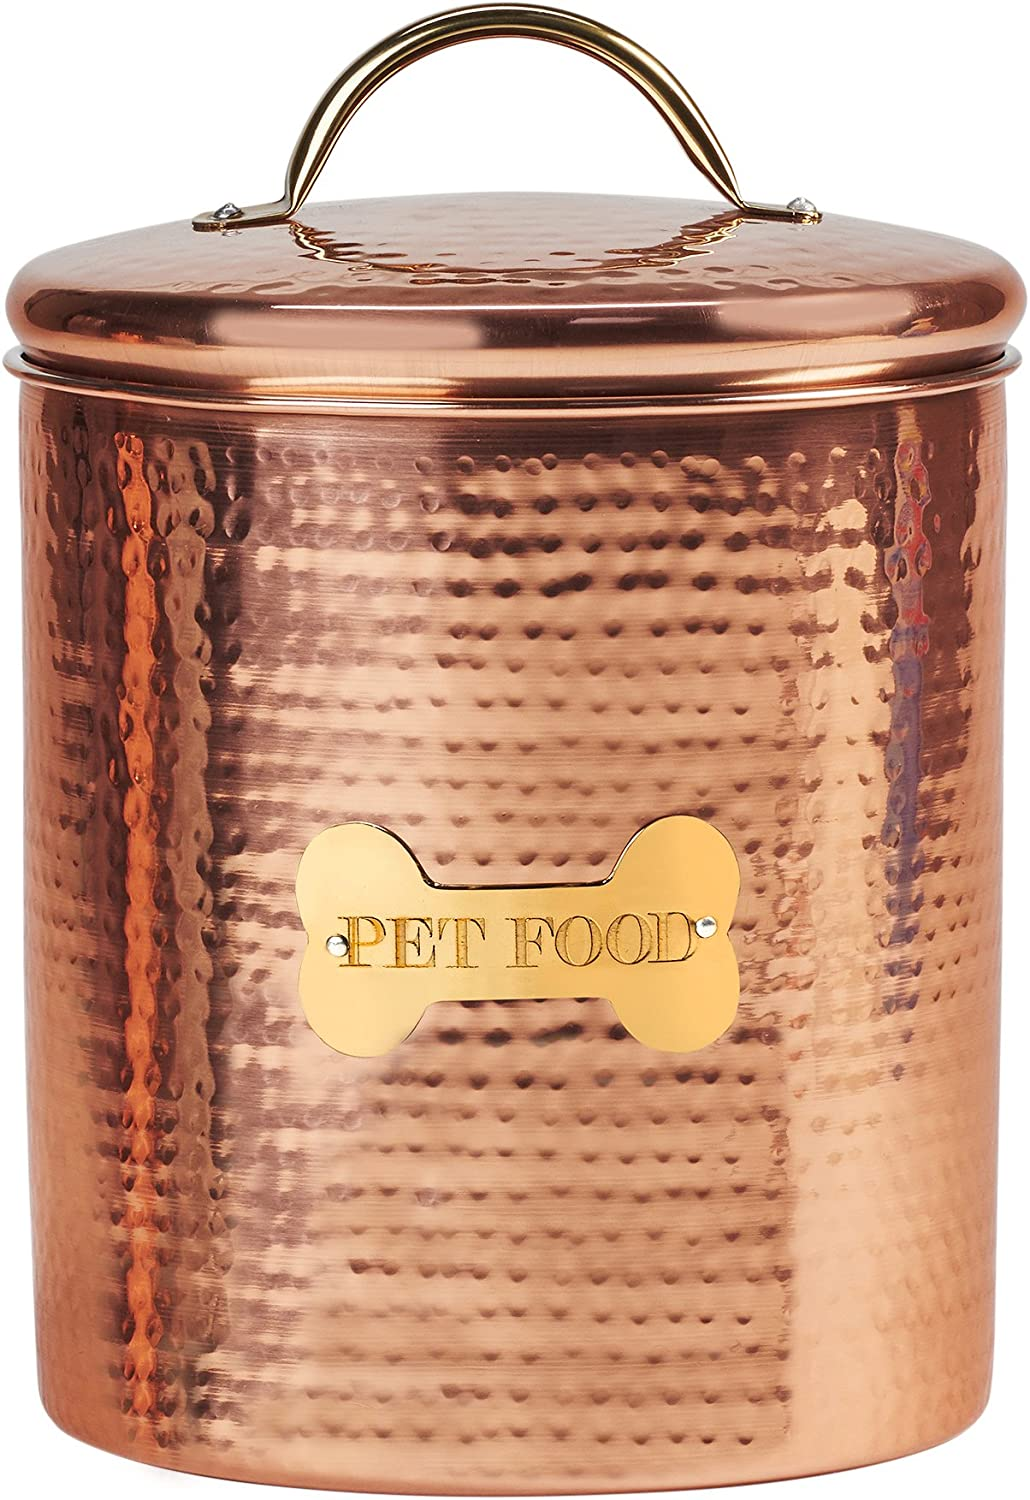 Amici Pet King Charles XL Amici Home Copper Dog Food Canister-104, X-Large/104 oz